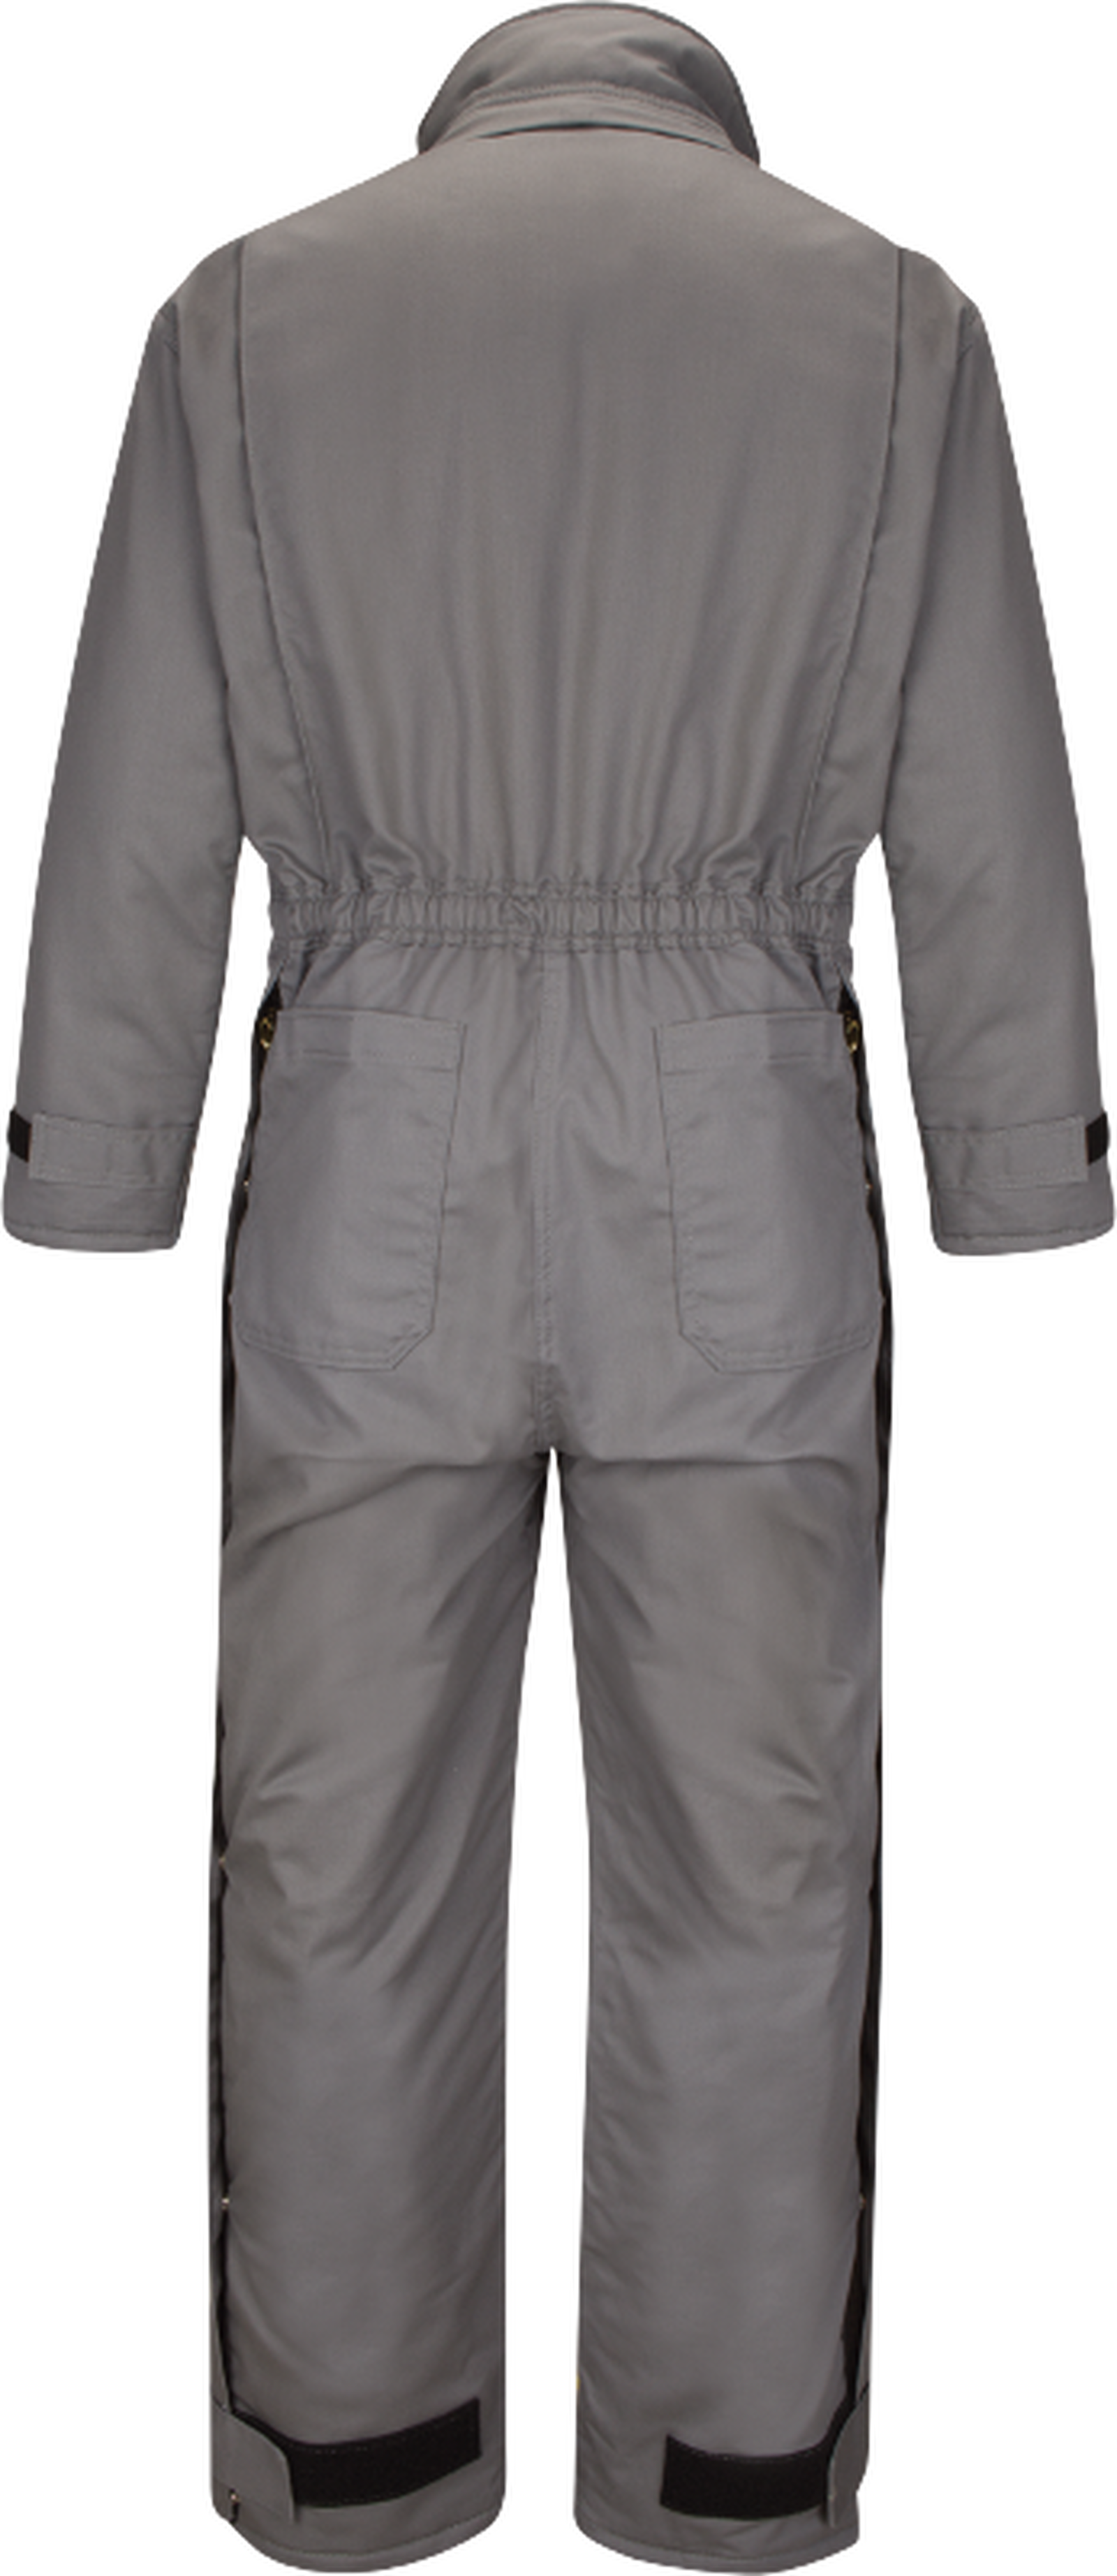 Men's Lightweight Excel FR® ComforTouch® Premium Insulated Coverall with Leg Tabs